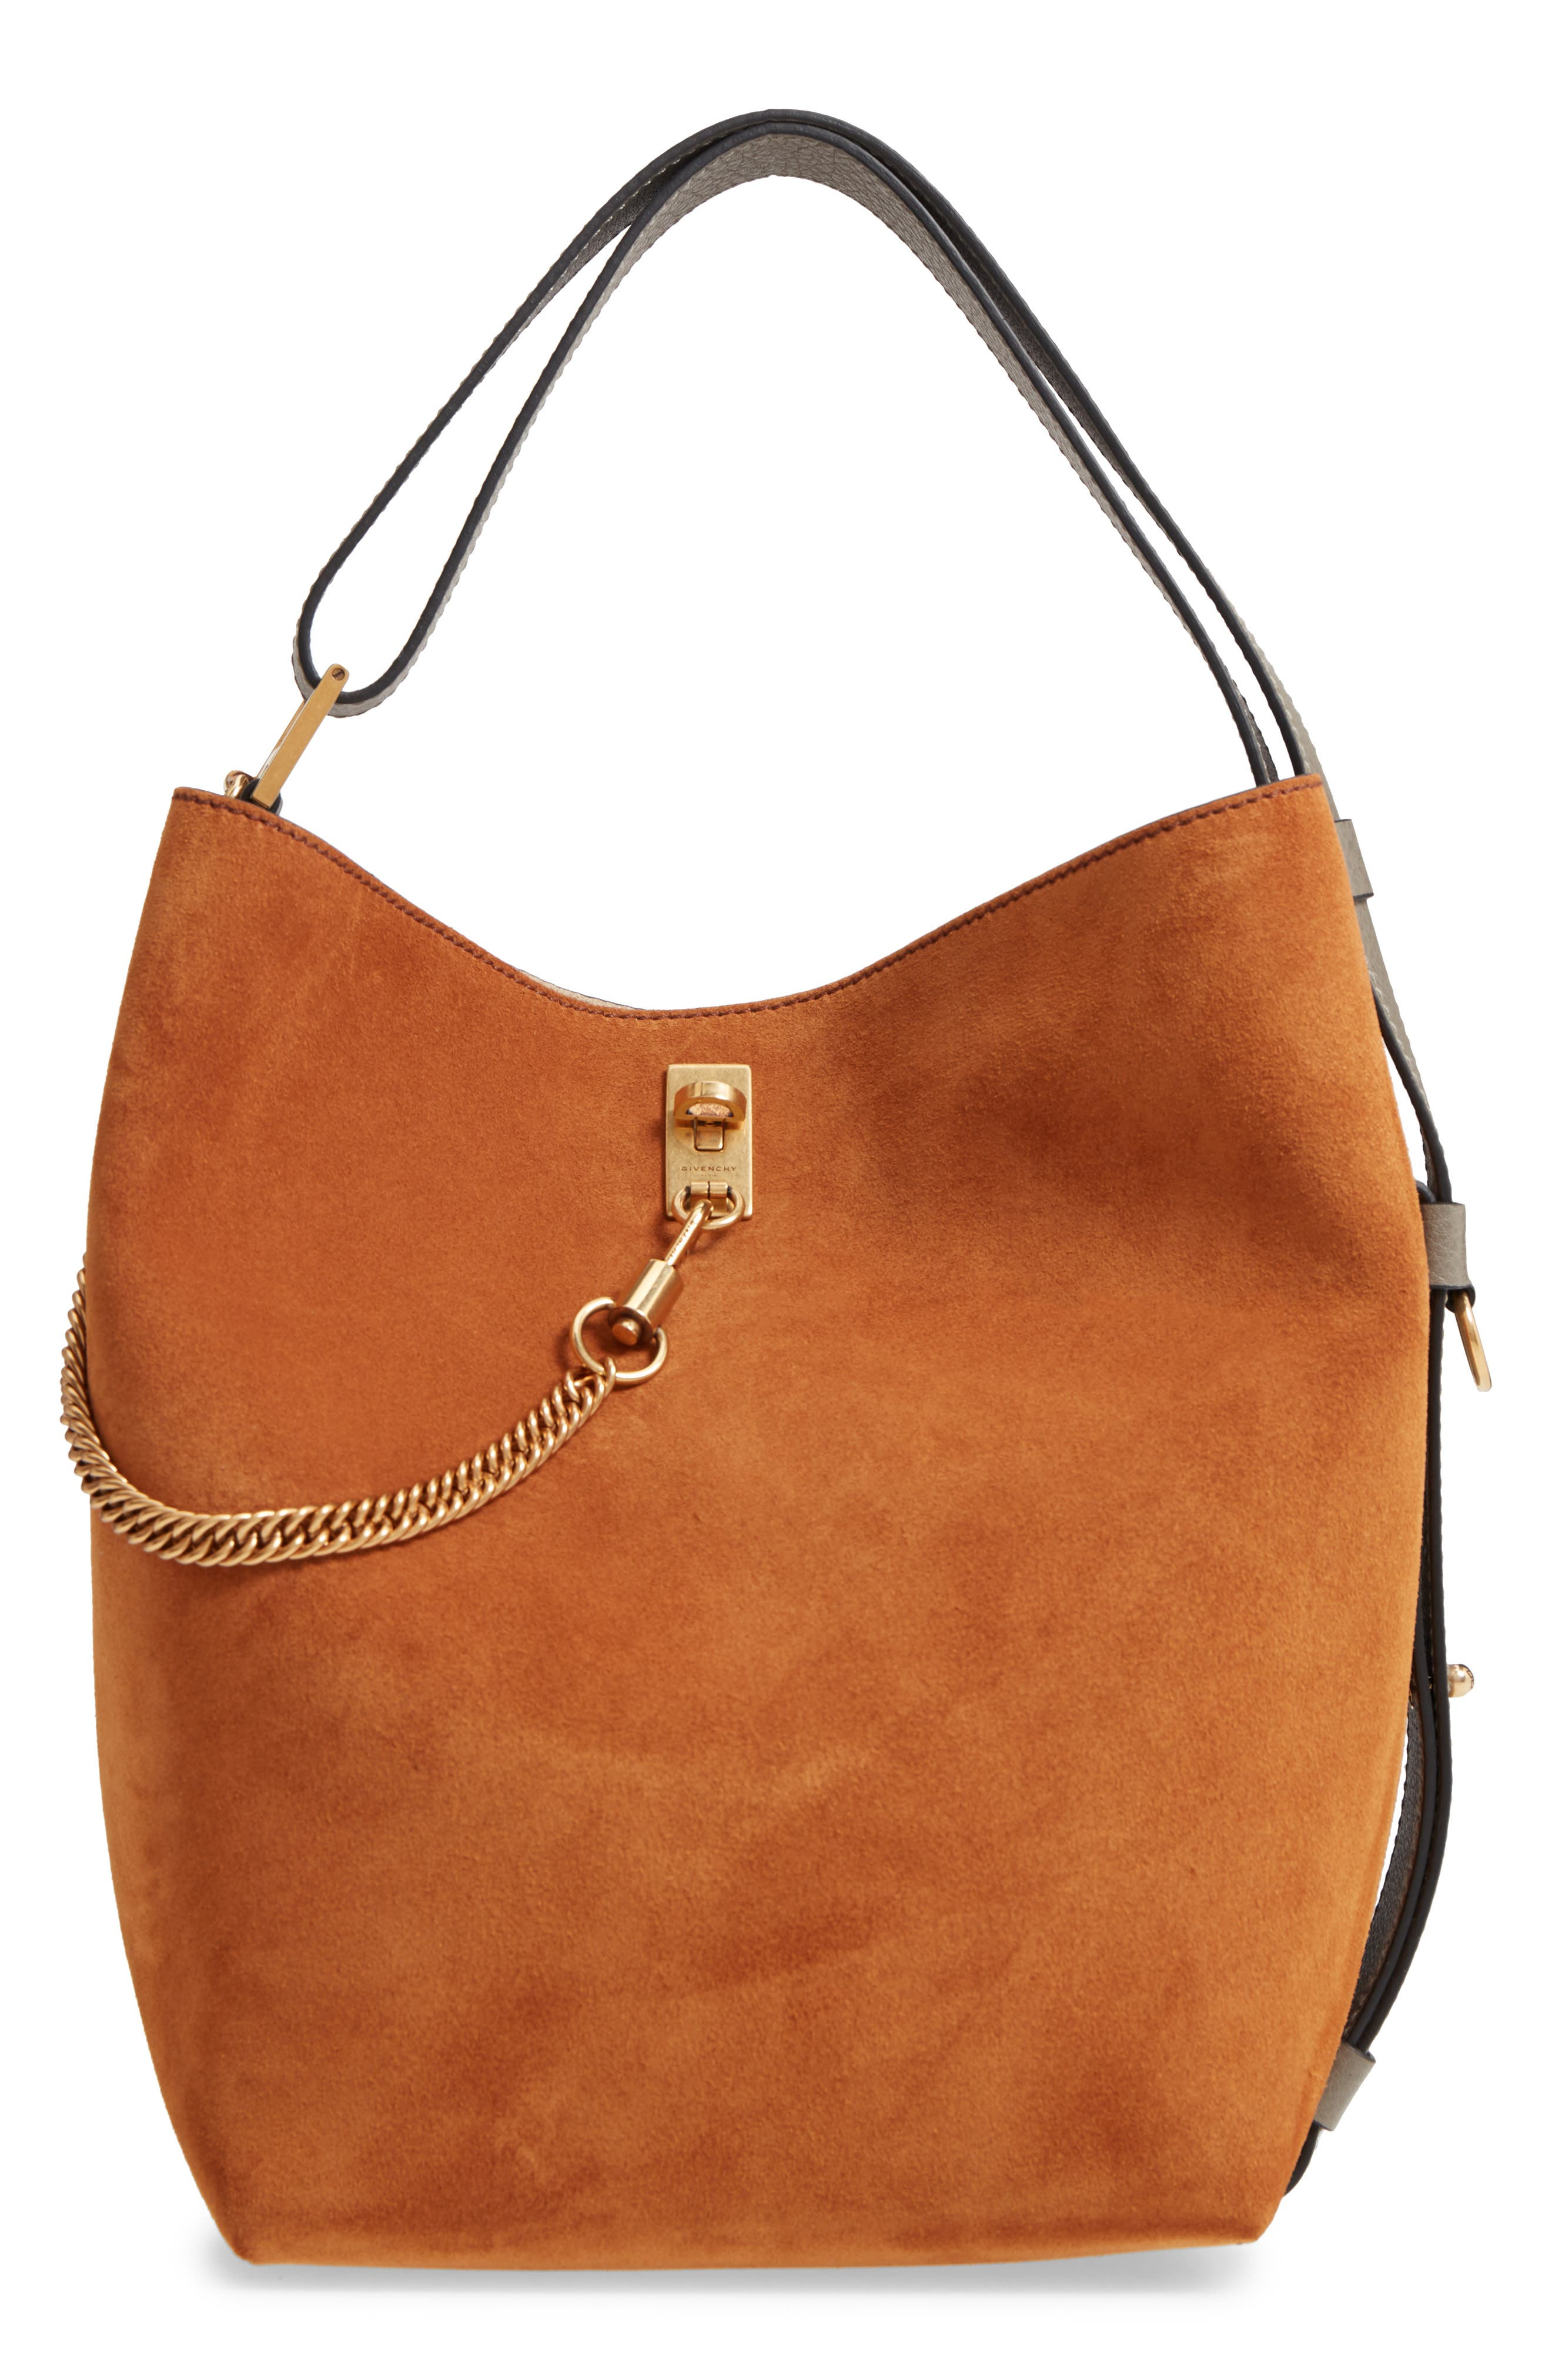 Medium GV Lambskin Bucket Bag,                         Main,                         color, BLACK/ CHESTNUT